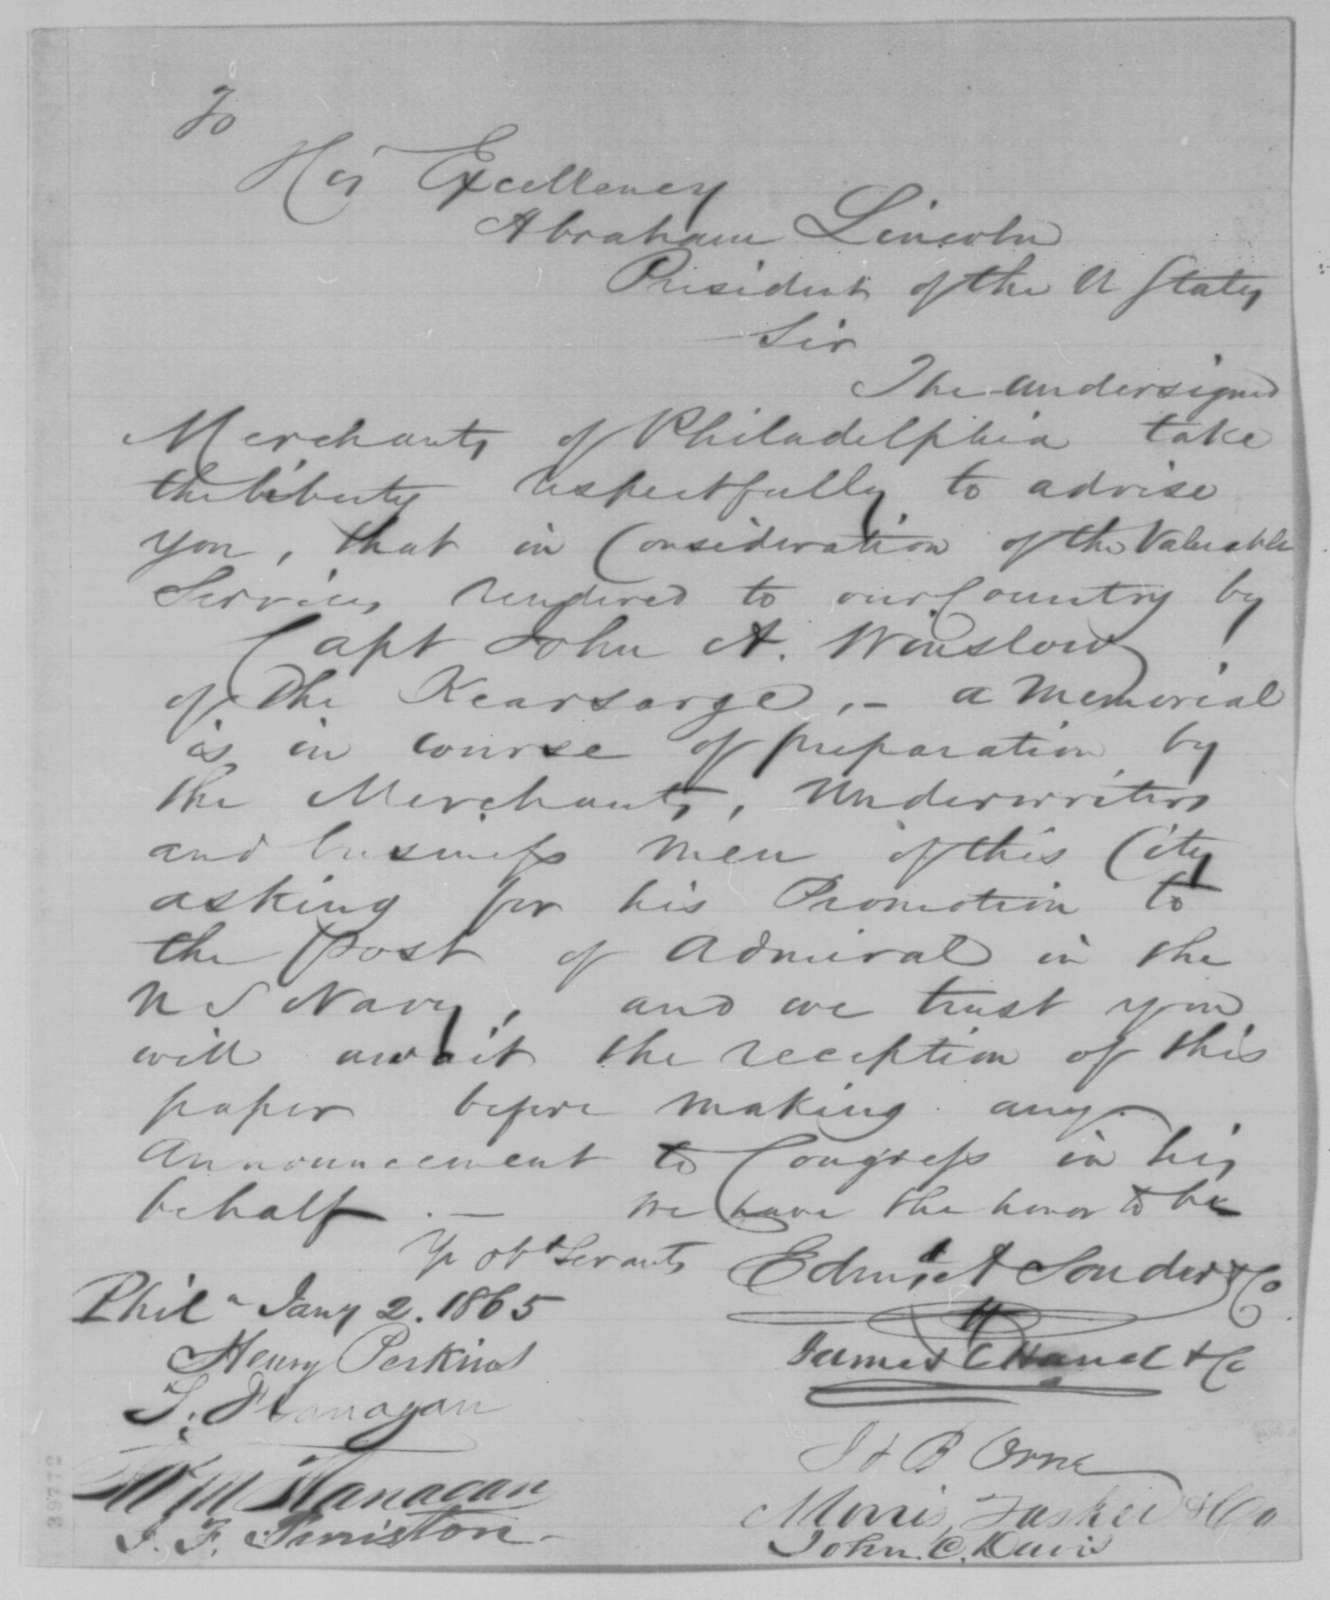 Philadelphia Merchants to Abraham Lincoln, Monday, January 02, 1865  (Petition in support of John A. Winslow)